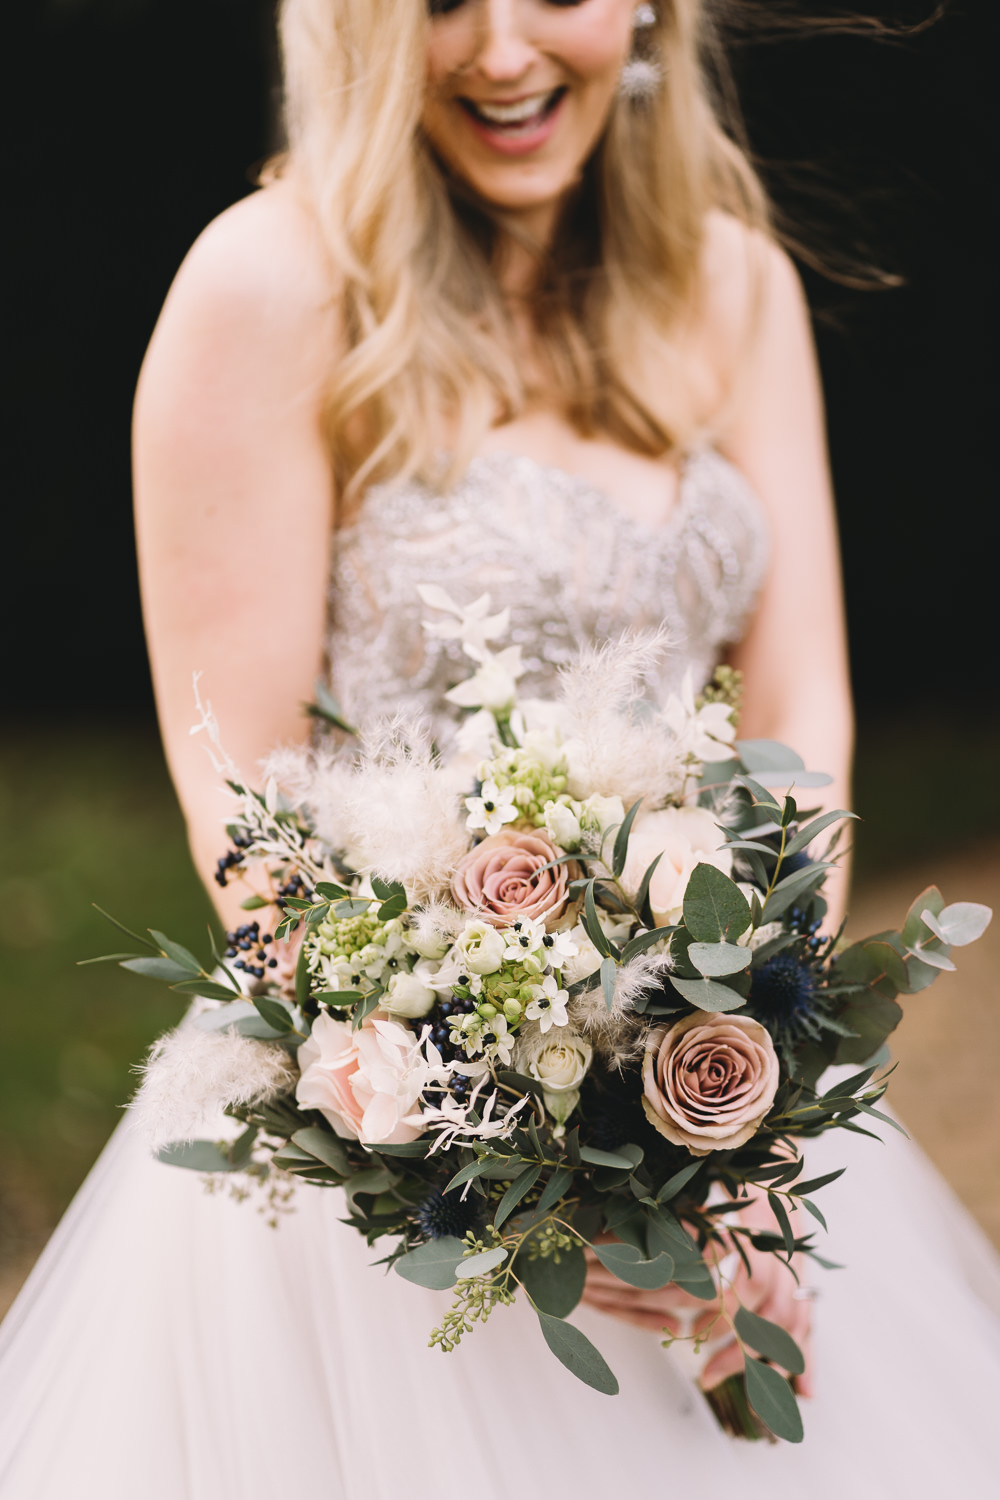 Bouquet Flowers Bride Bridal Eucalyptus Pink Rose Maidens Barn Wedding Sophie Oldhamstead Photography